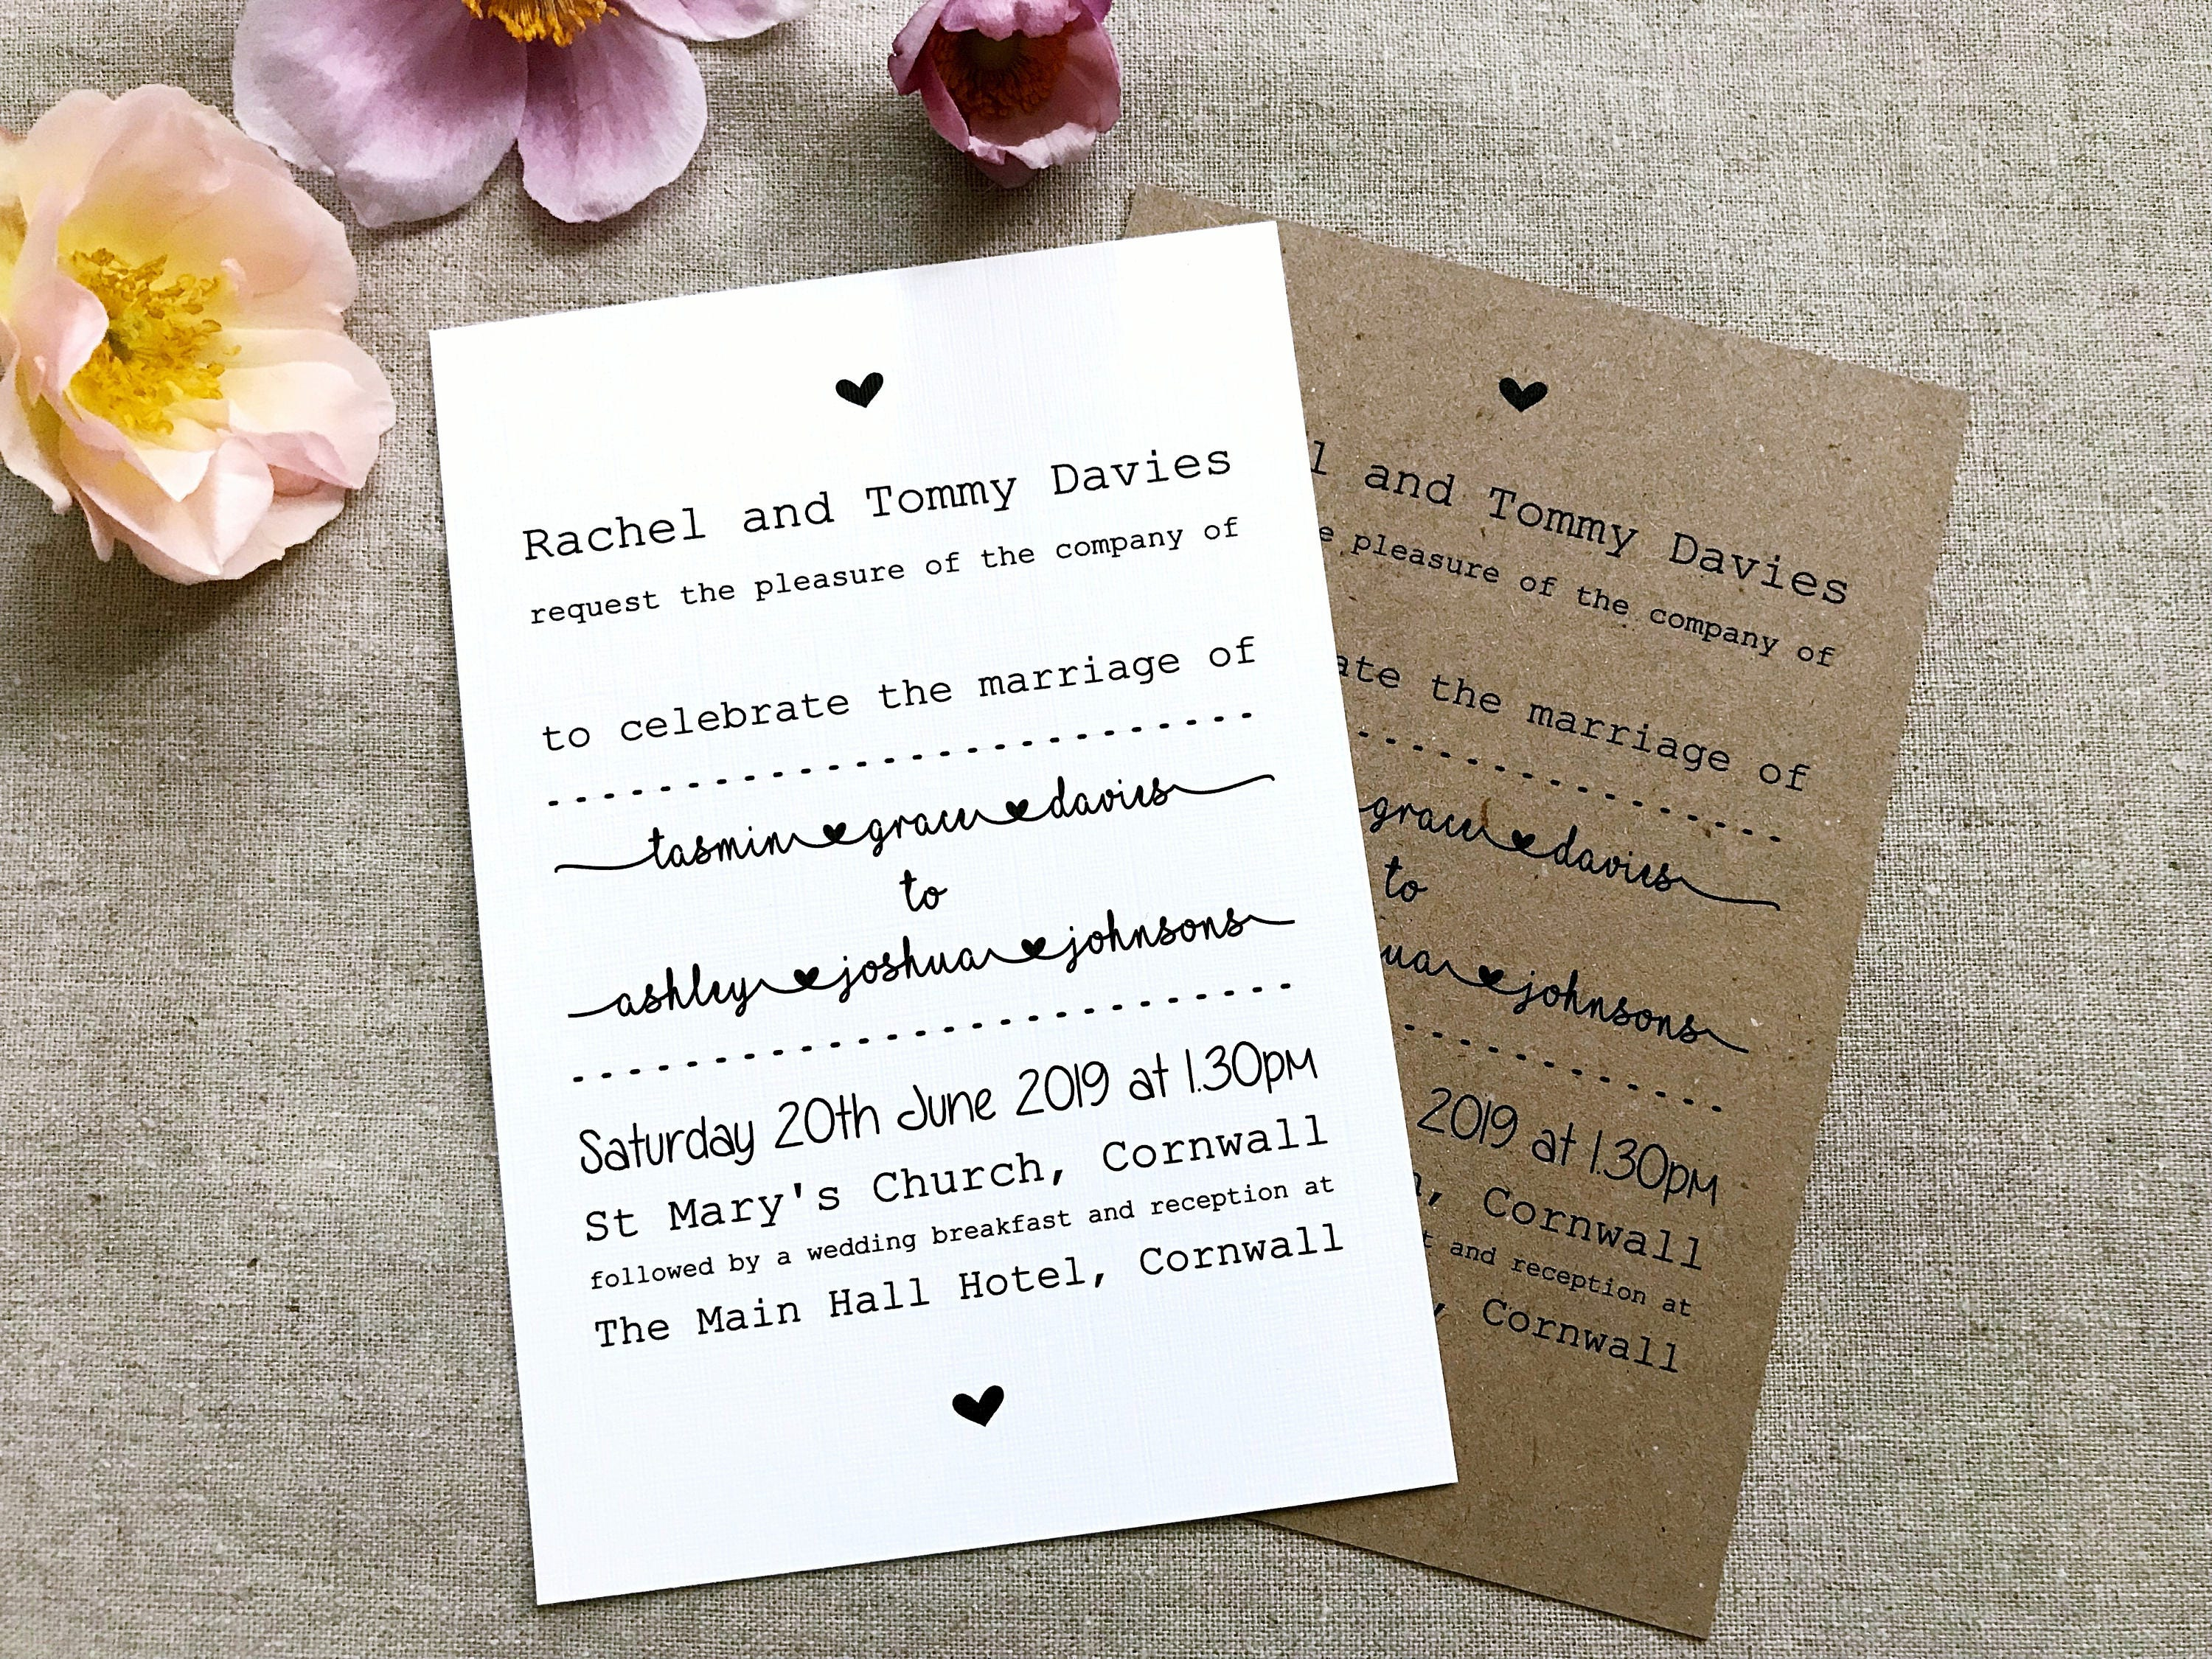 Wedding Evening Day Invitations Vintage/Shabby Chic Rustic Style ...